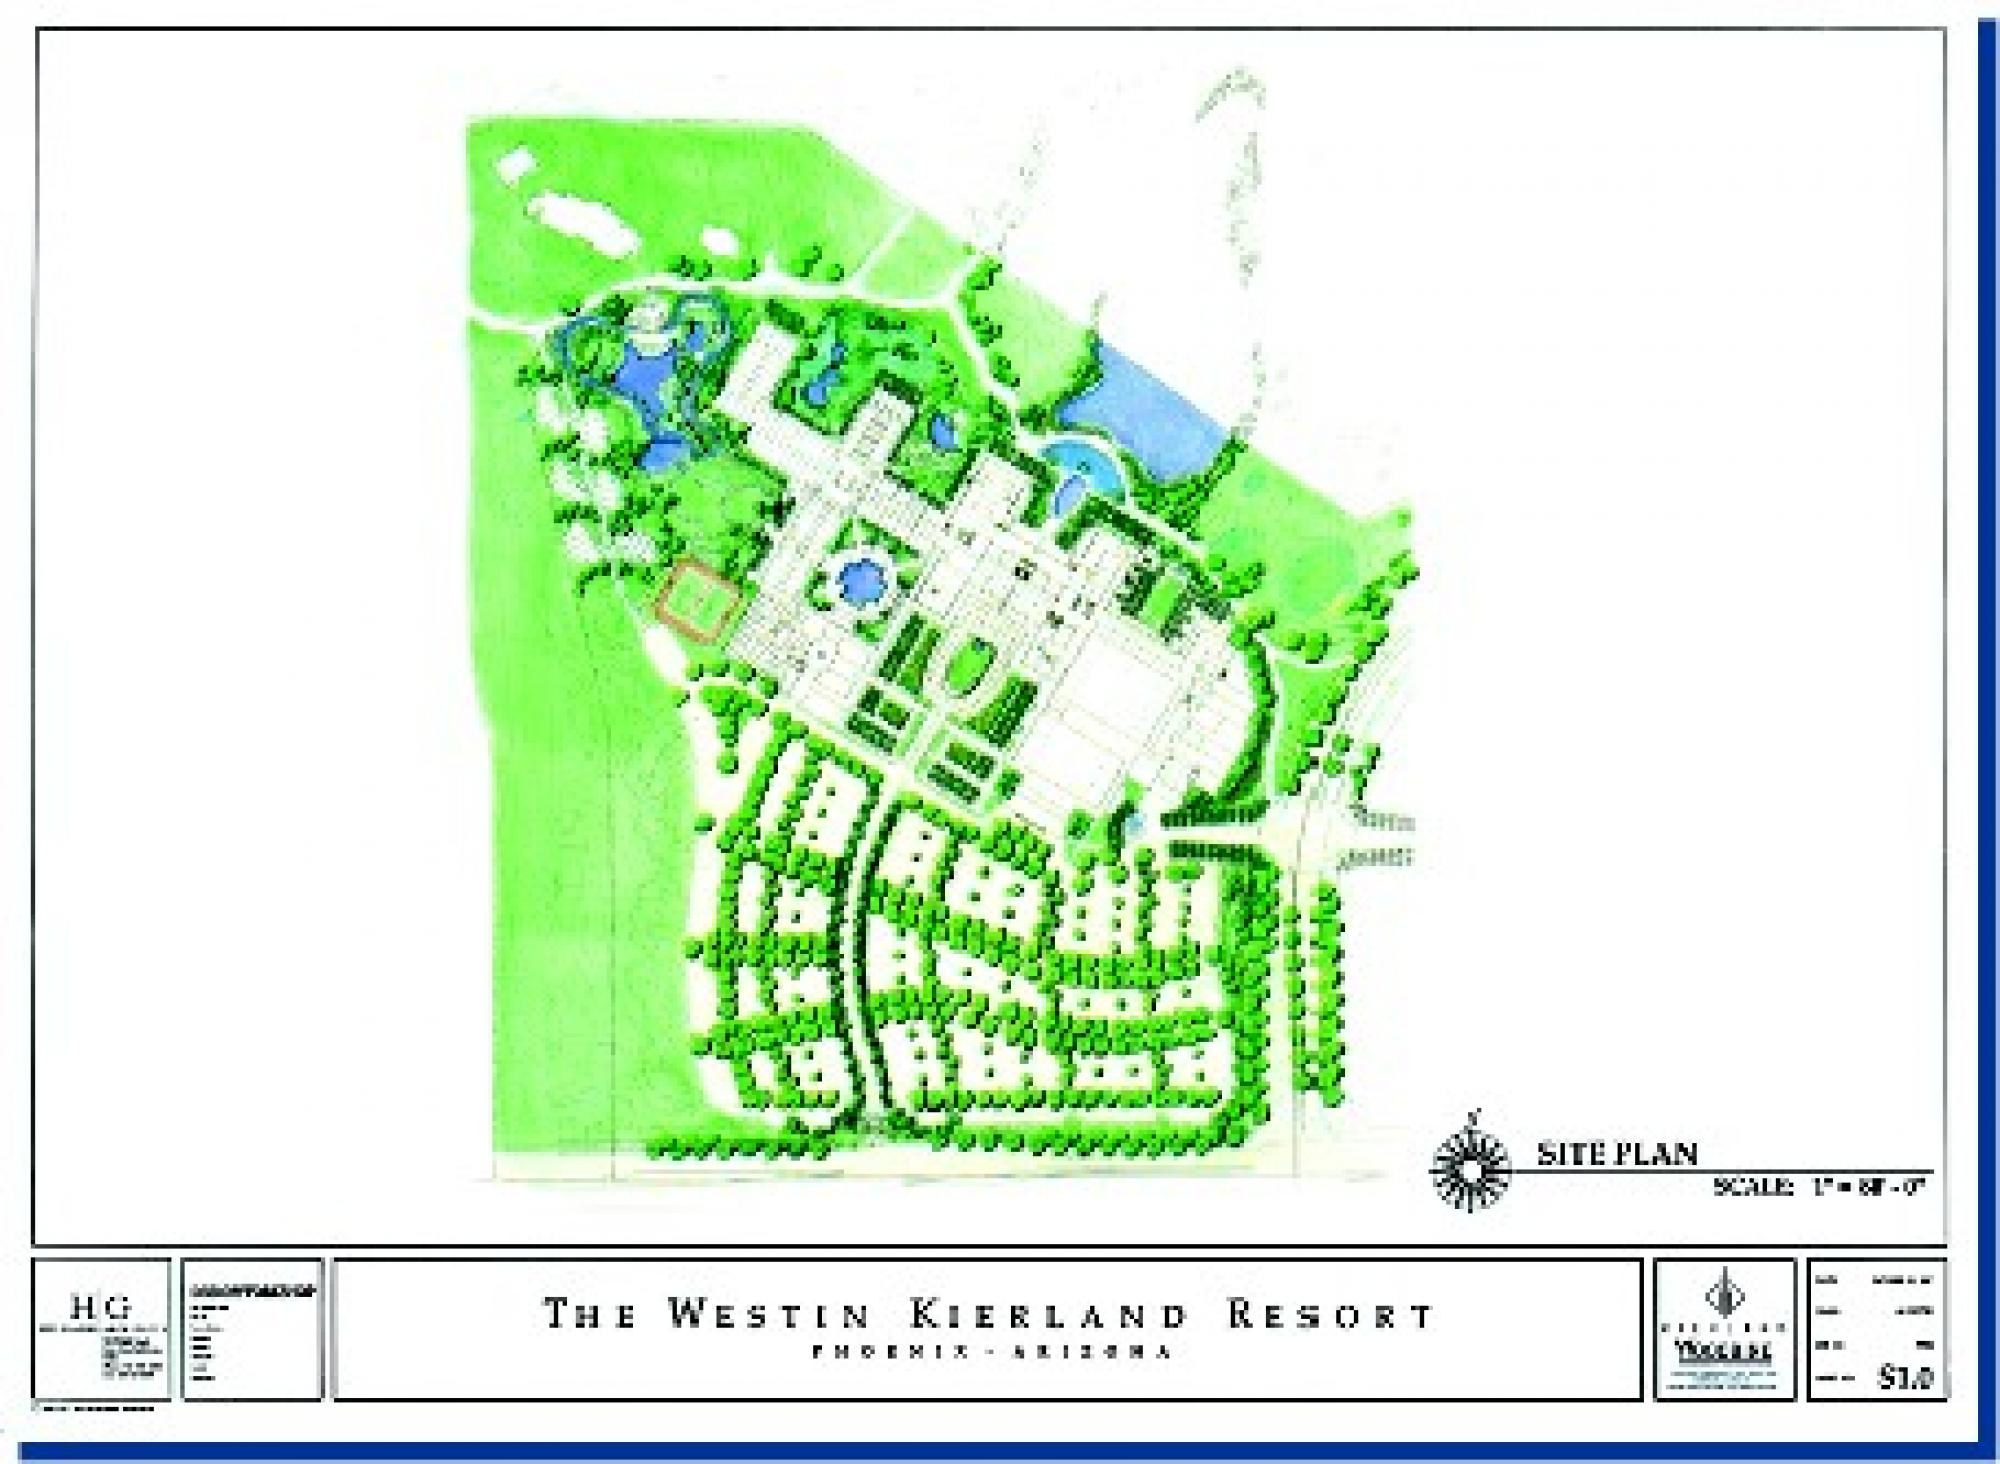 Westin Kierland Resort Site Plan